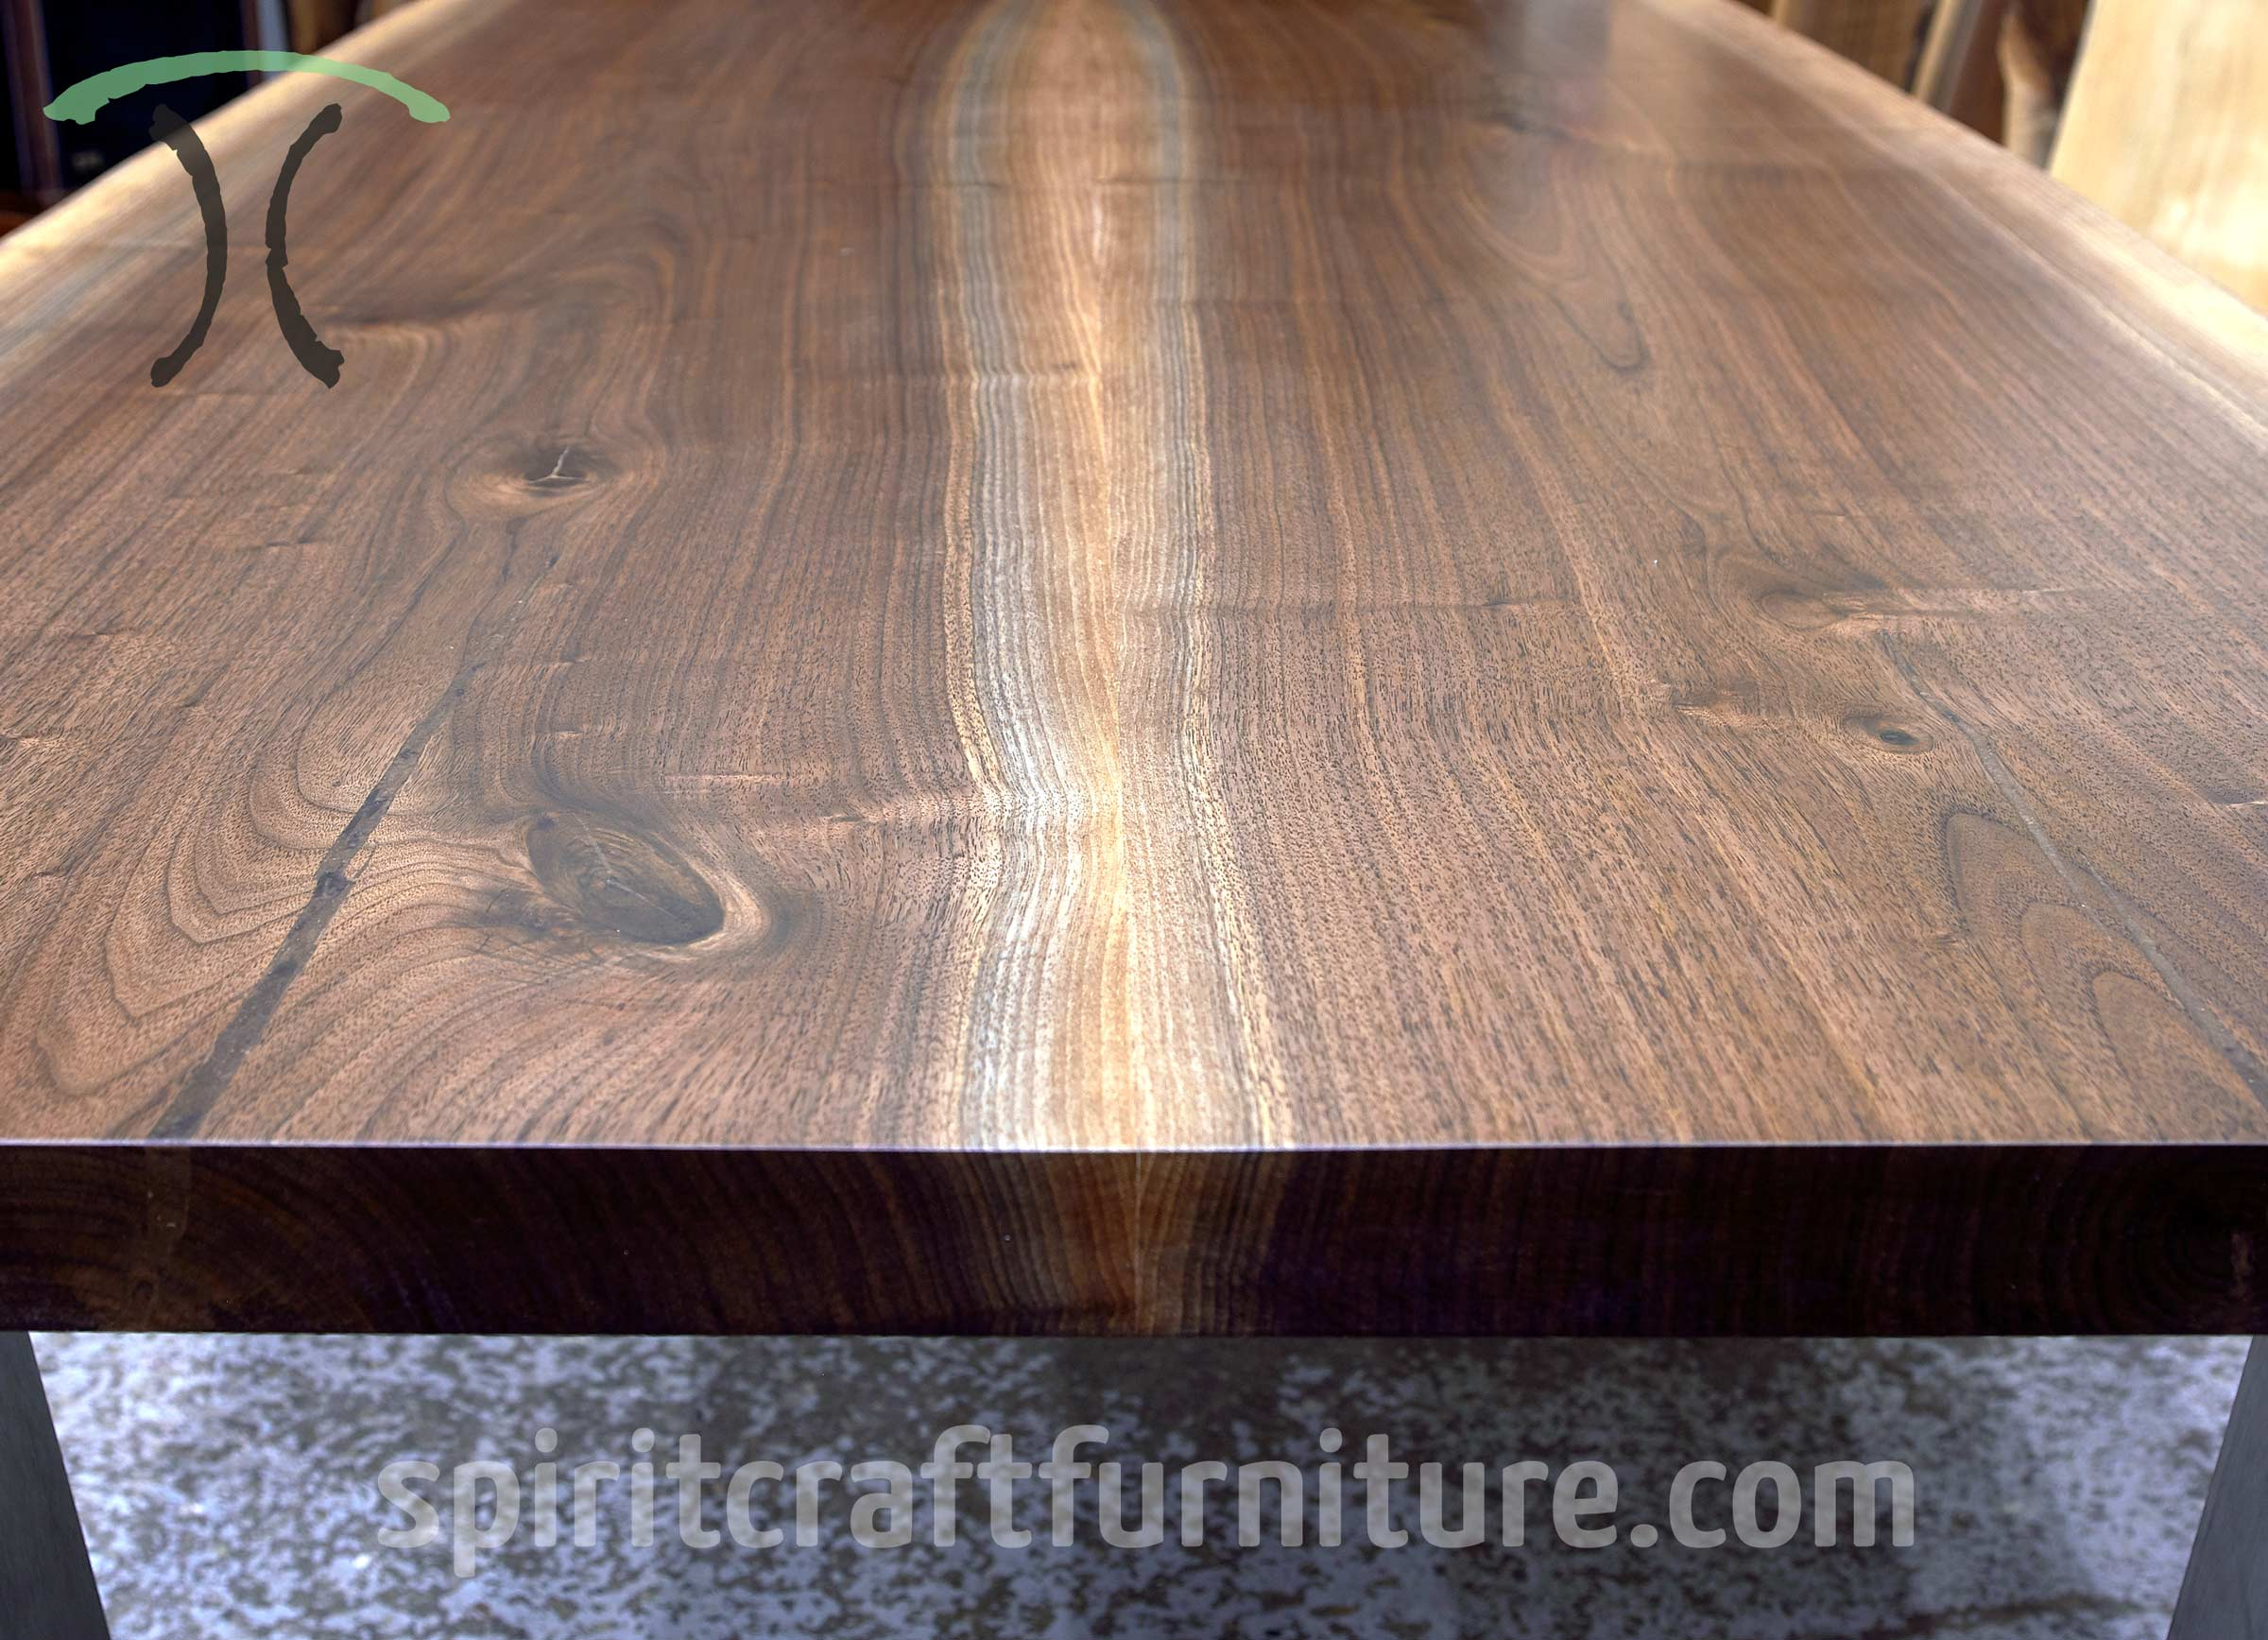 Solid Walnut Live Edge Slab Dining Table With Stainless Legs For  Massechusetts Client By Spiritcraft Interior